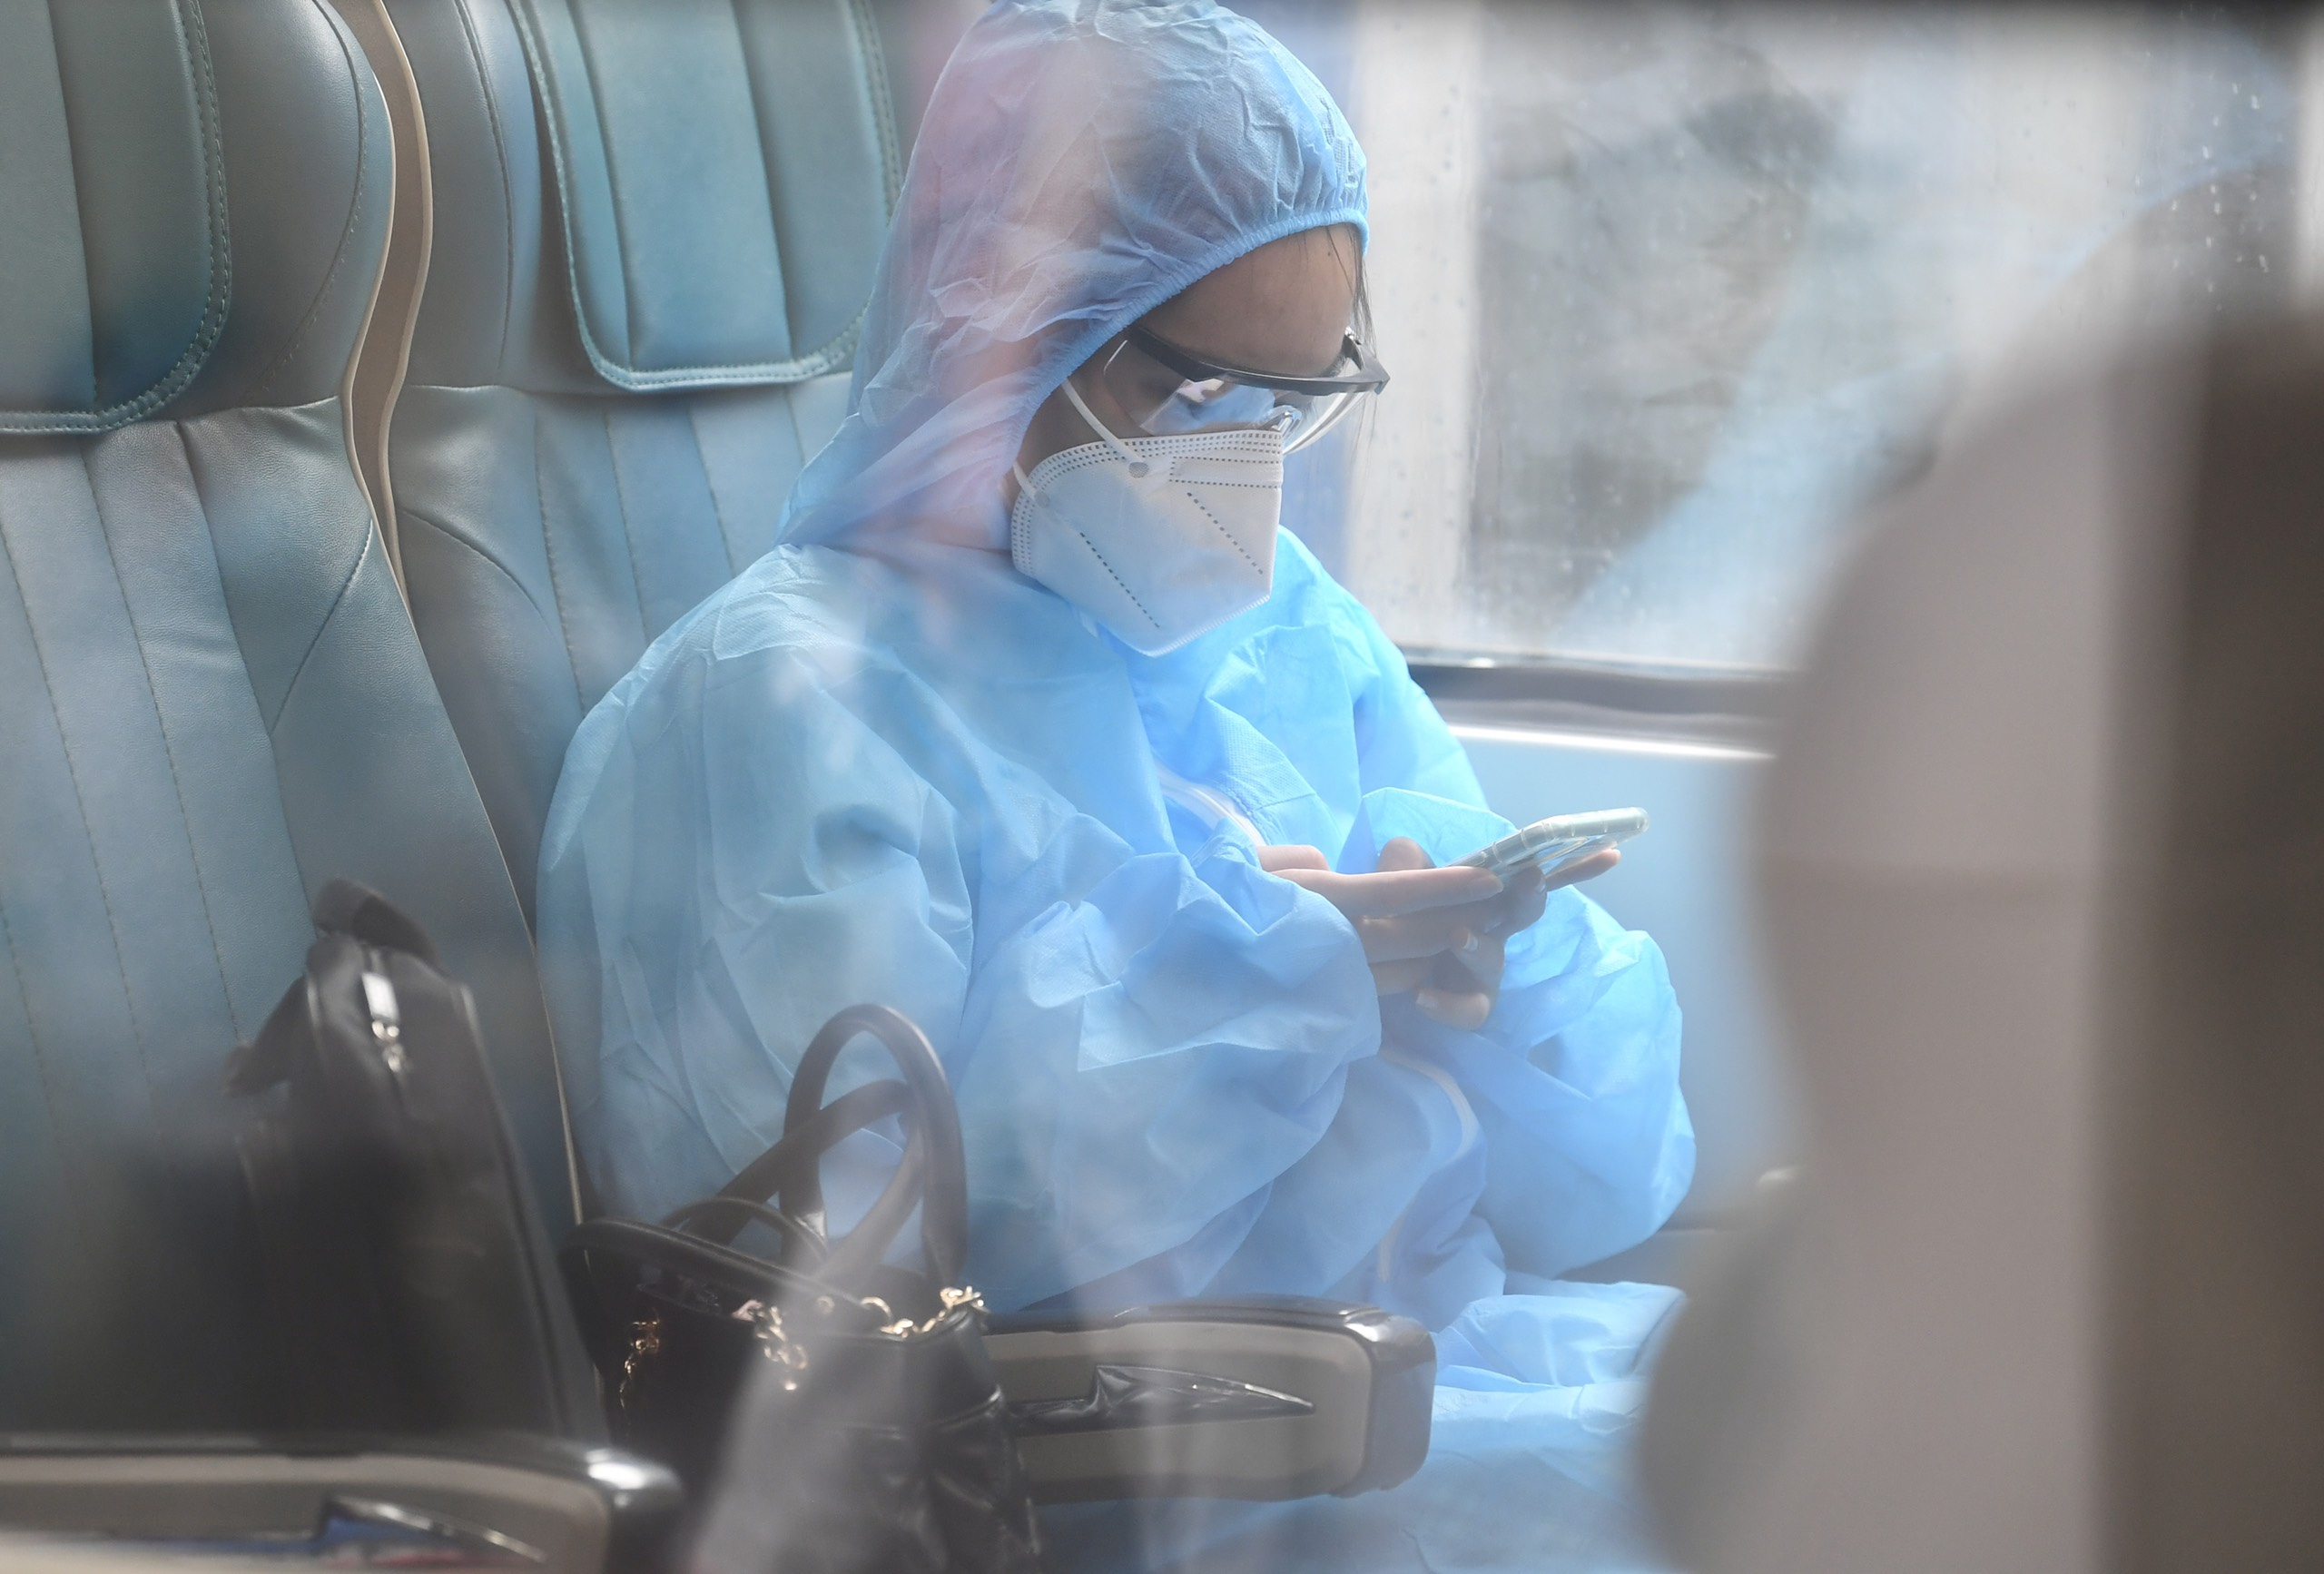 A passenger puts on face mask and protective clothing to protect herself on the SE5 train at Hanoi Railway Station, October 13, 2021. Photo: Duy Hoang / Tuoi Tre